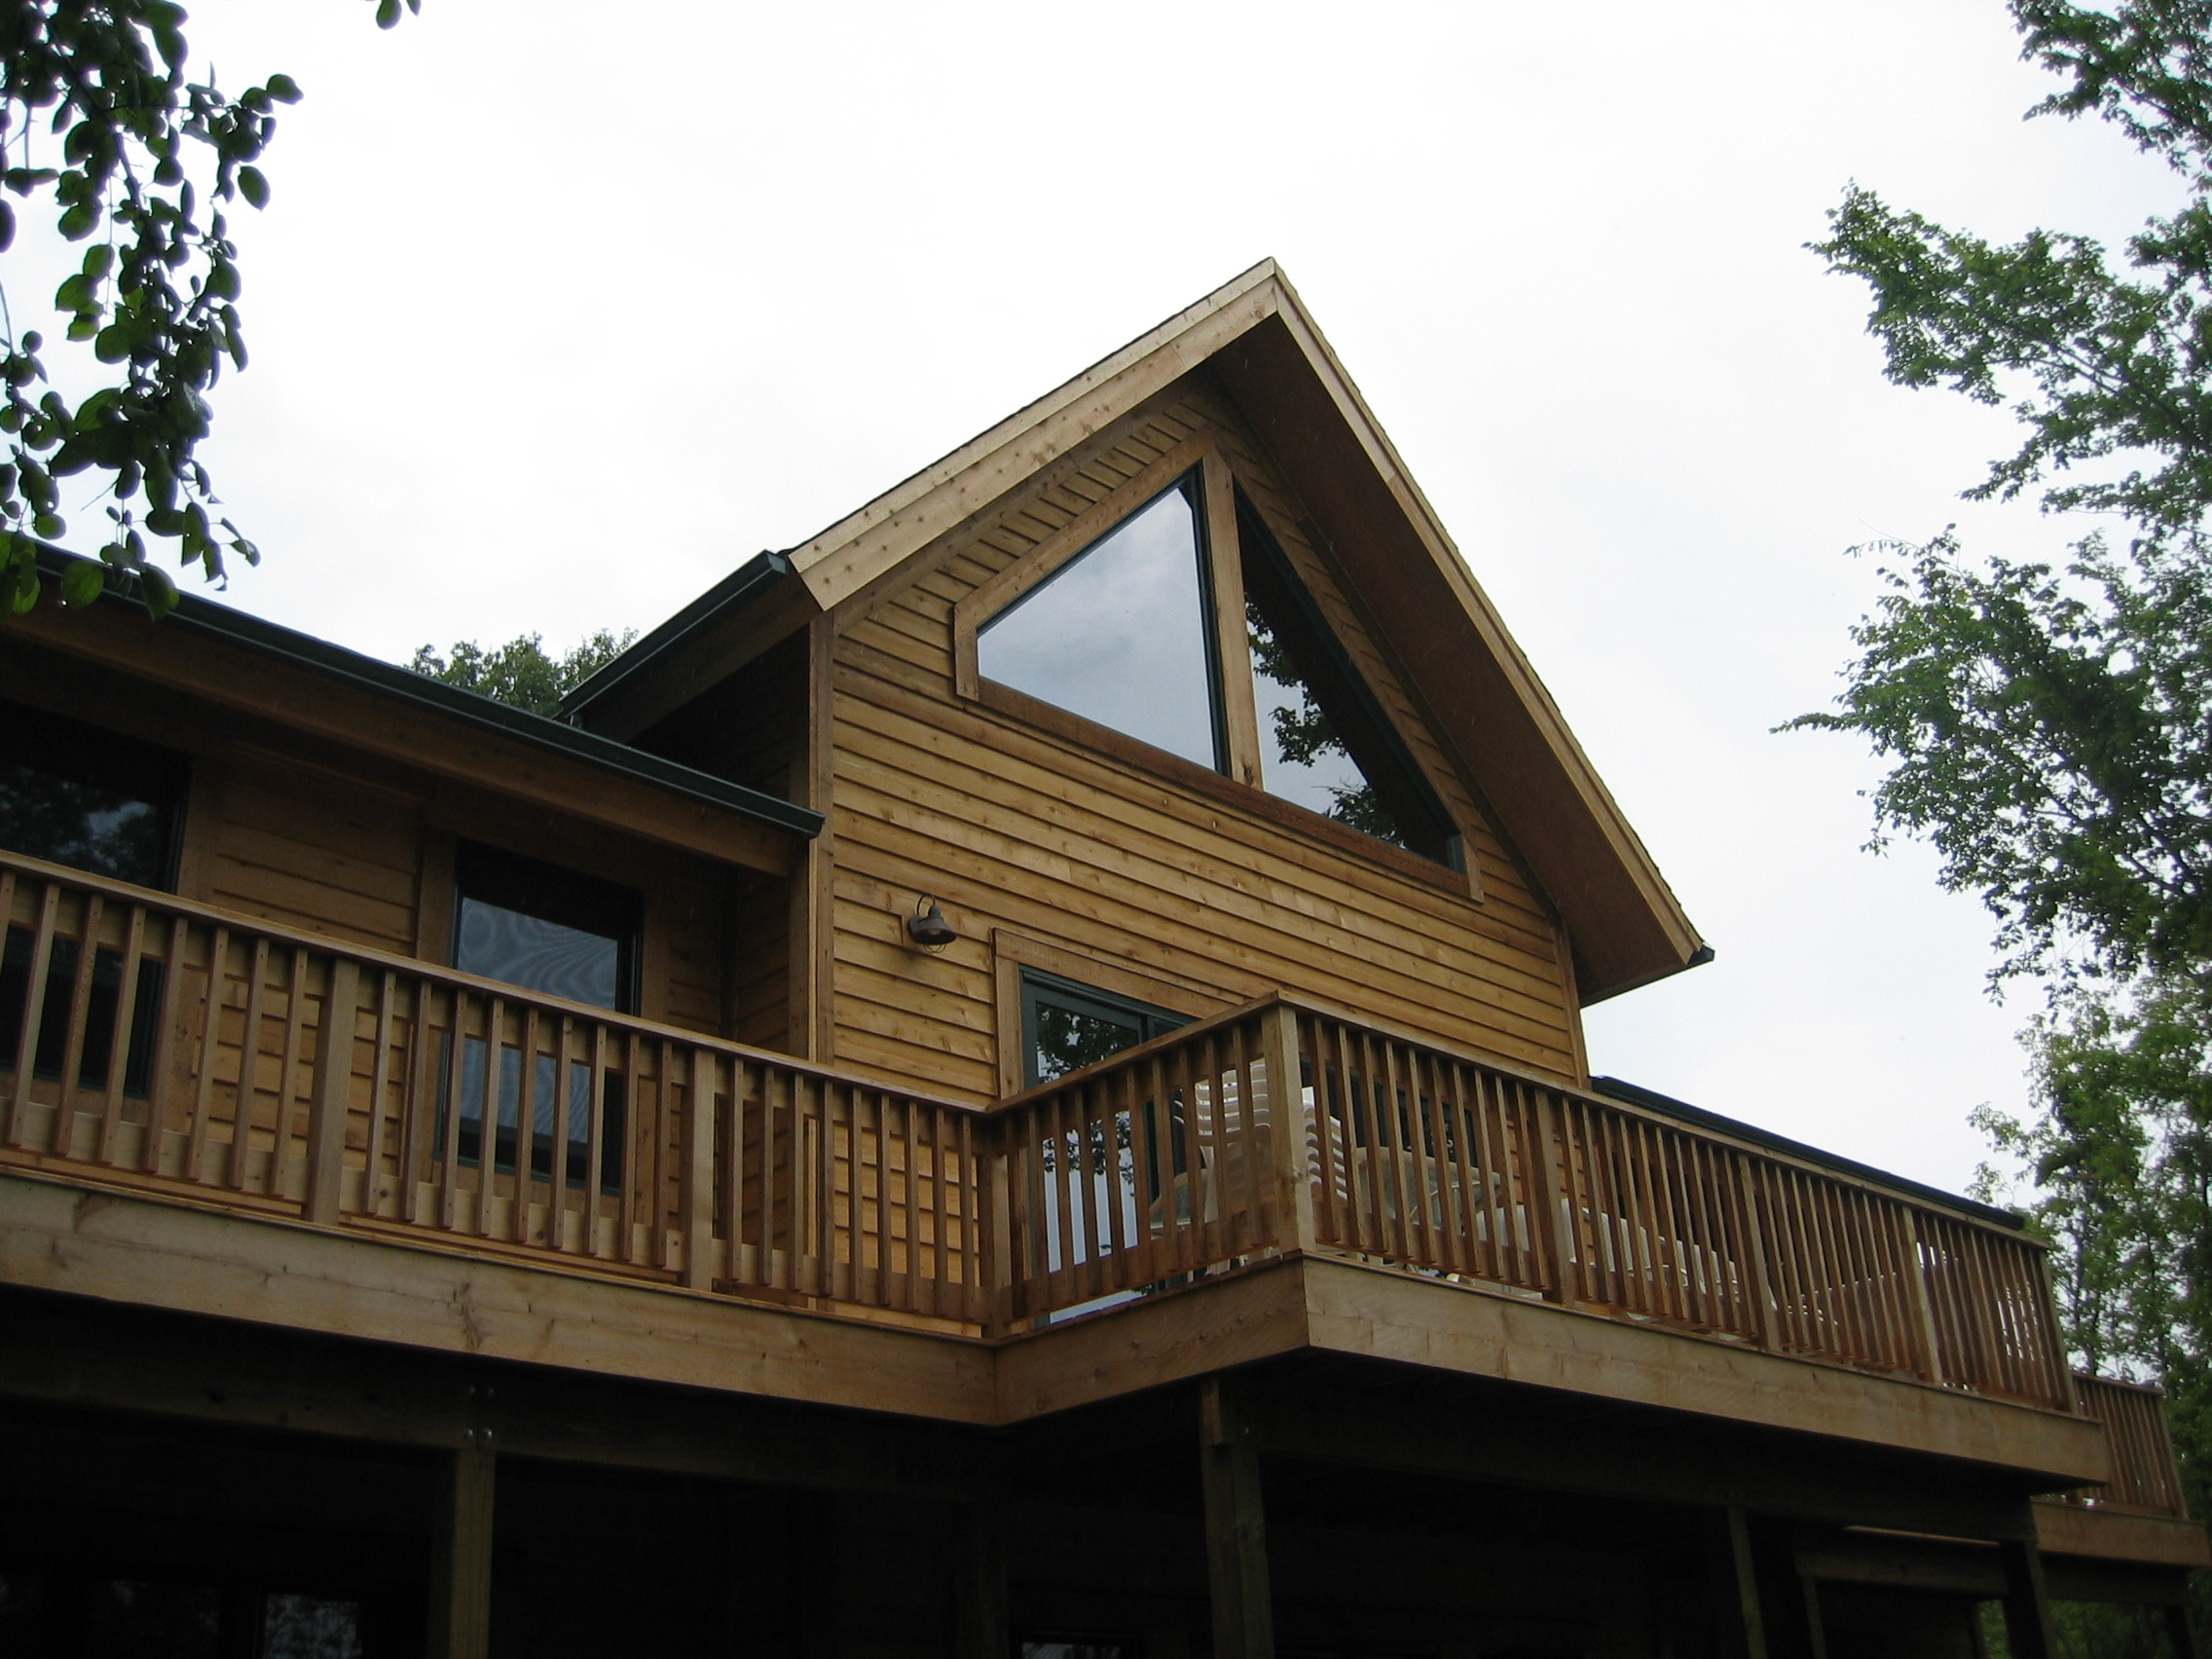 St. Joseph, WI Timber Frame: Back Exterior, With Deck